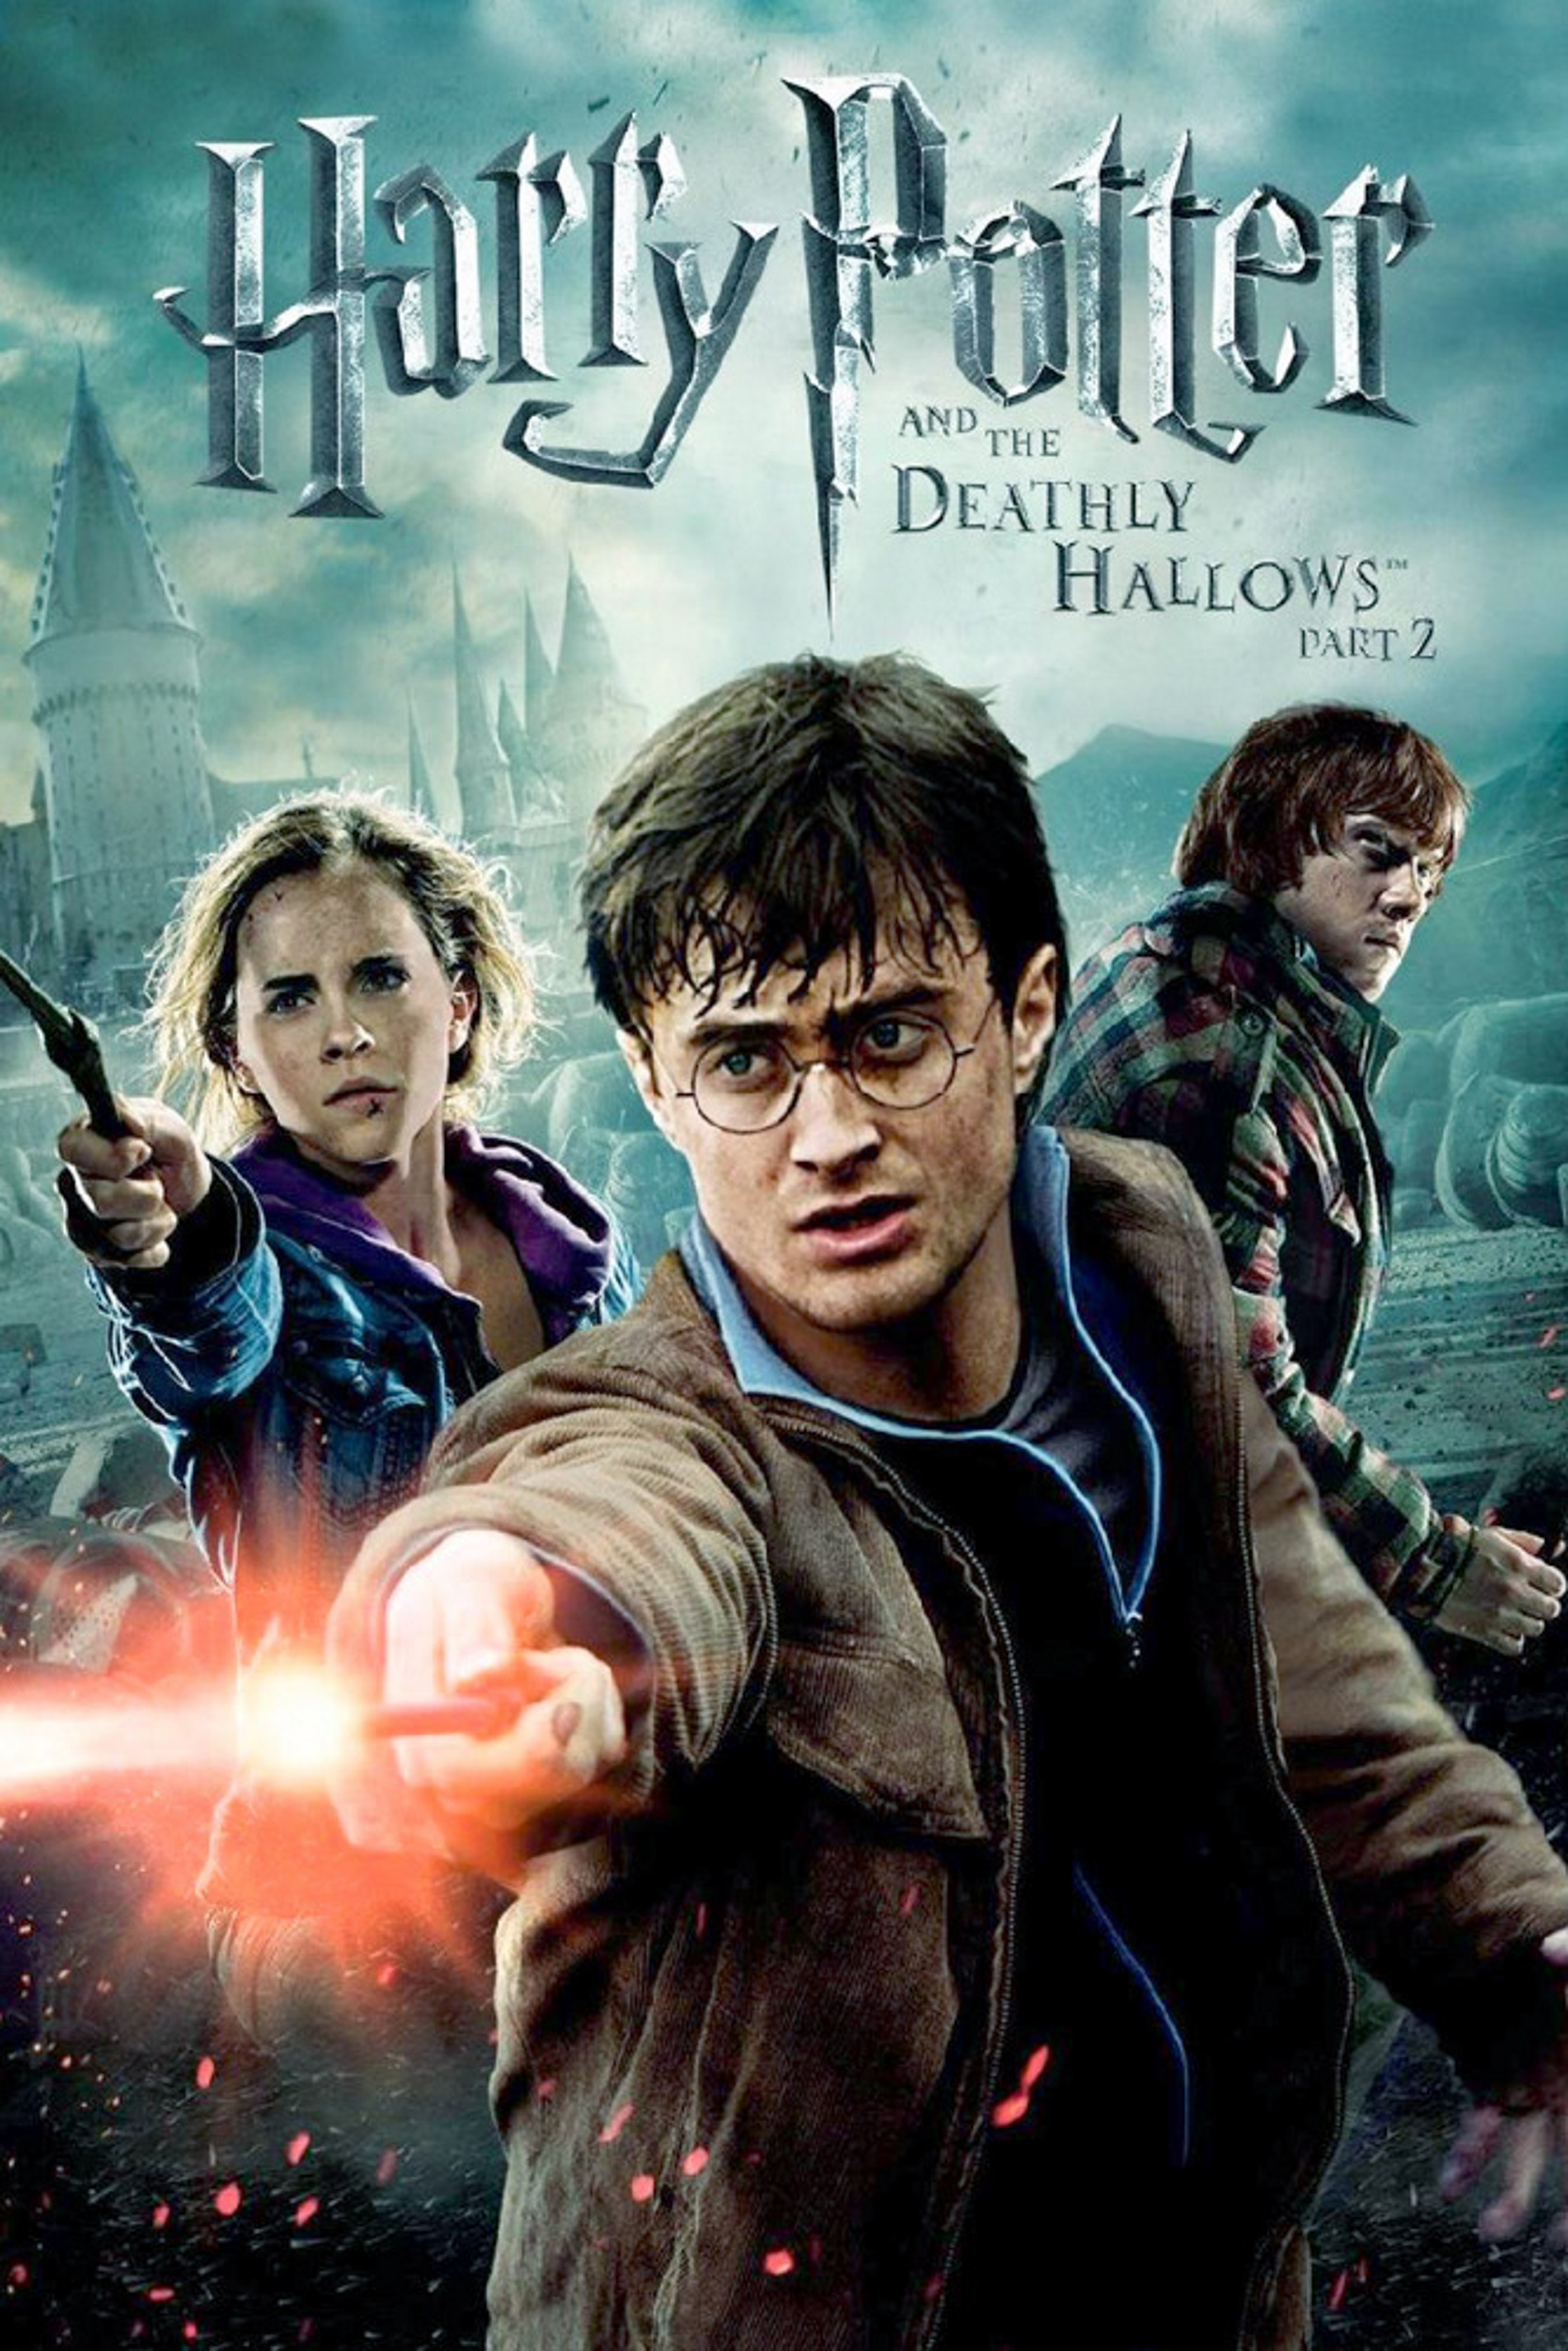 Image result for Harry Potter Deathly Hallows movie